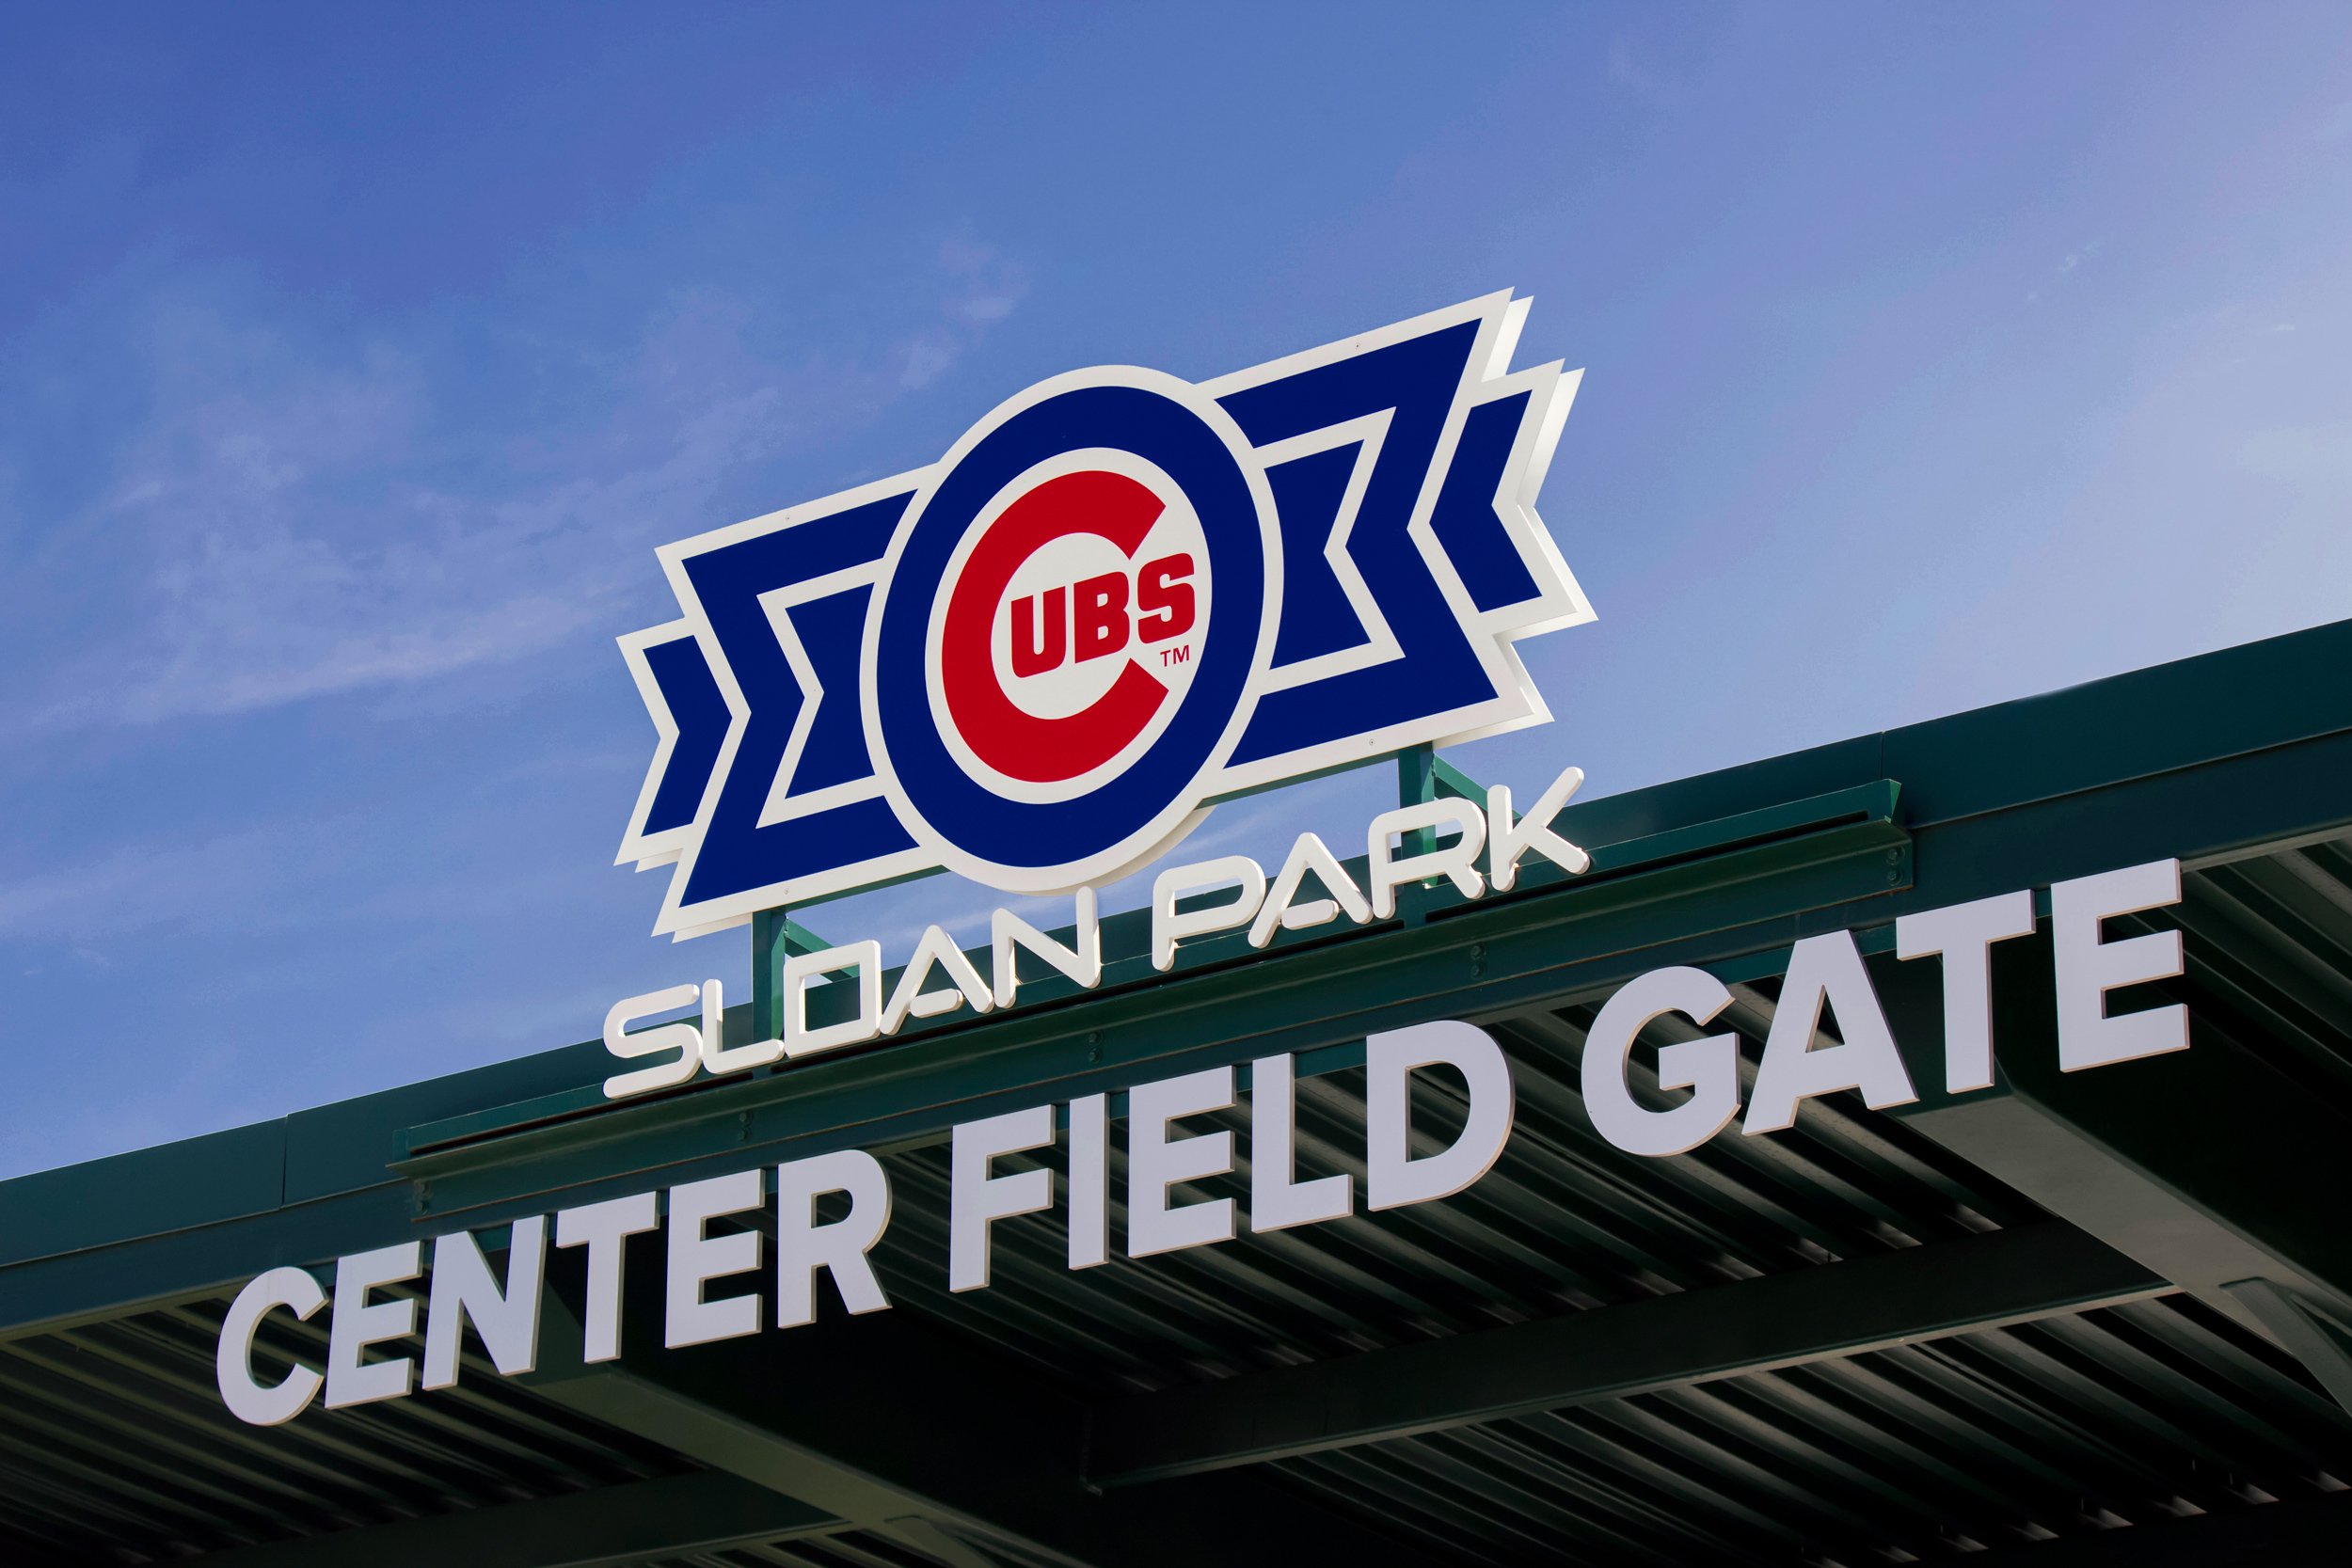 A flat cut out aluminum canopy sign marks the center field gate entrance.